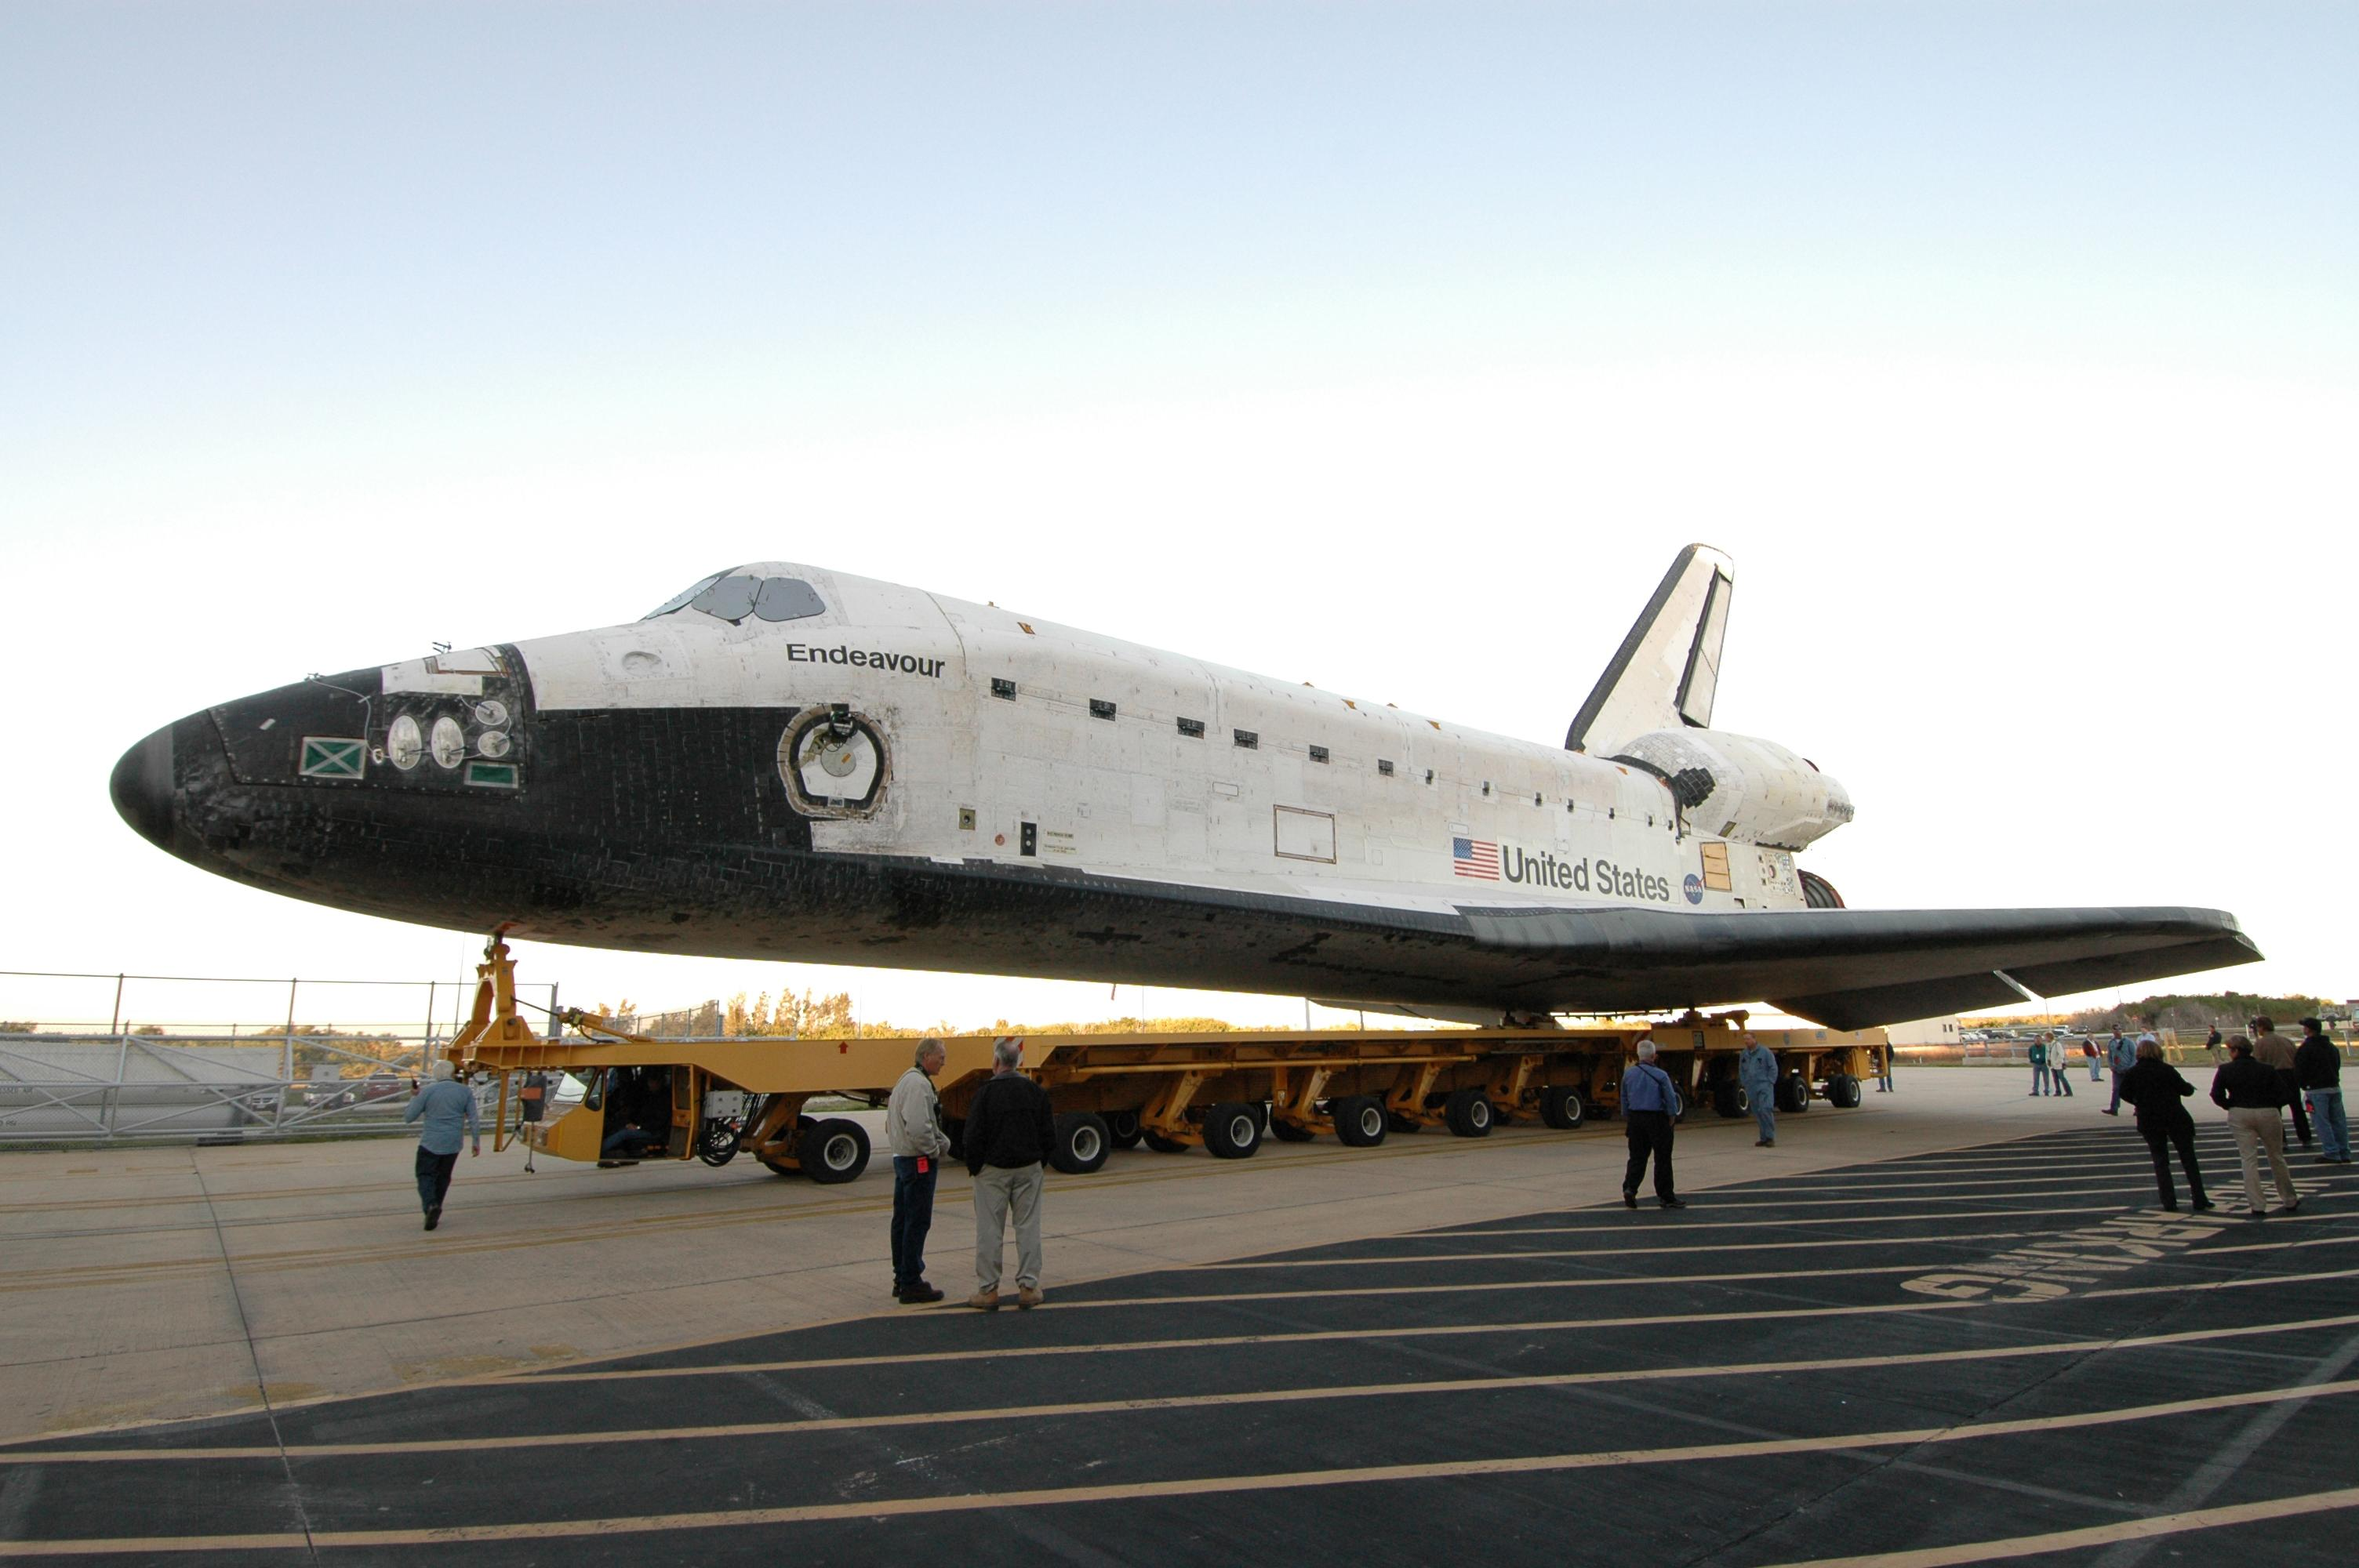 nasa space shuttle replacement vehicle - photo #17